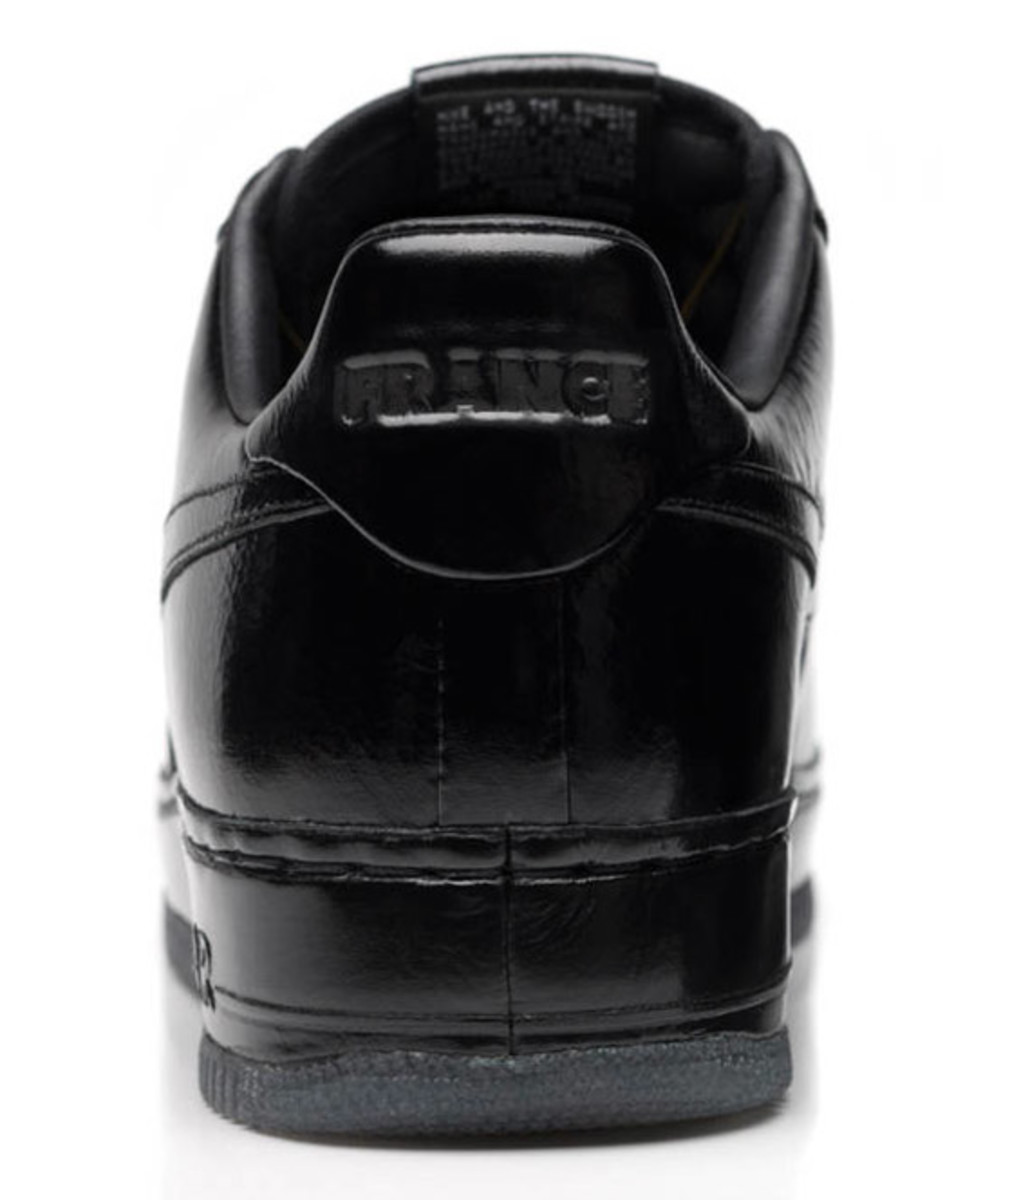 jay-z-nike-air-force-1-all-black-everything-france-07